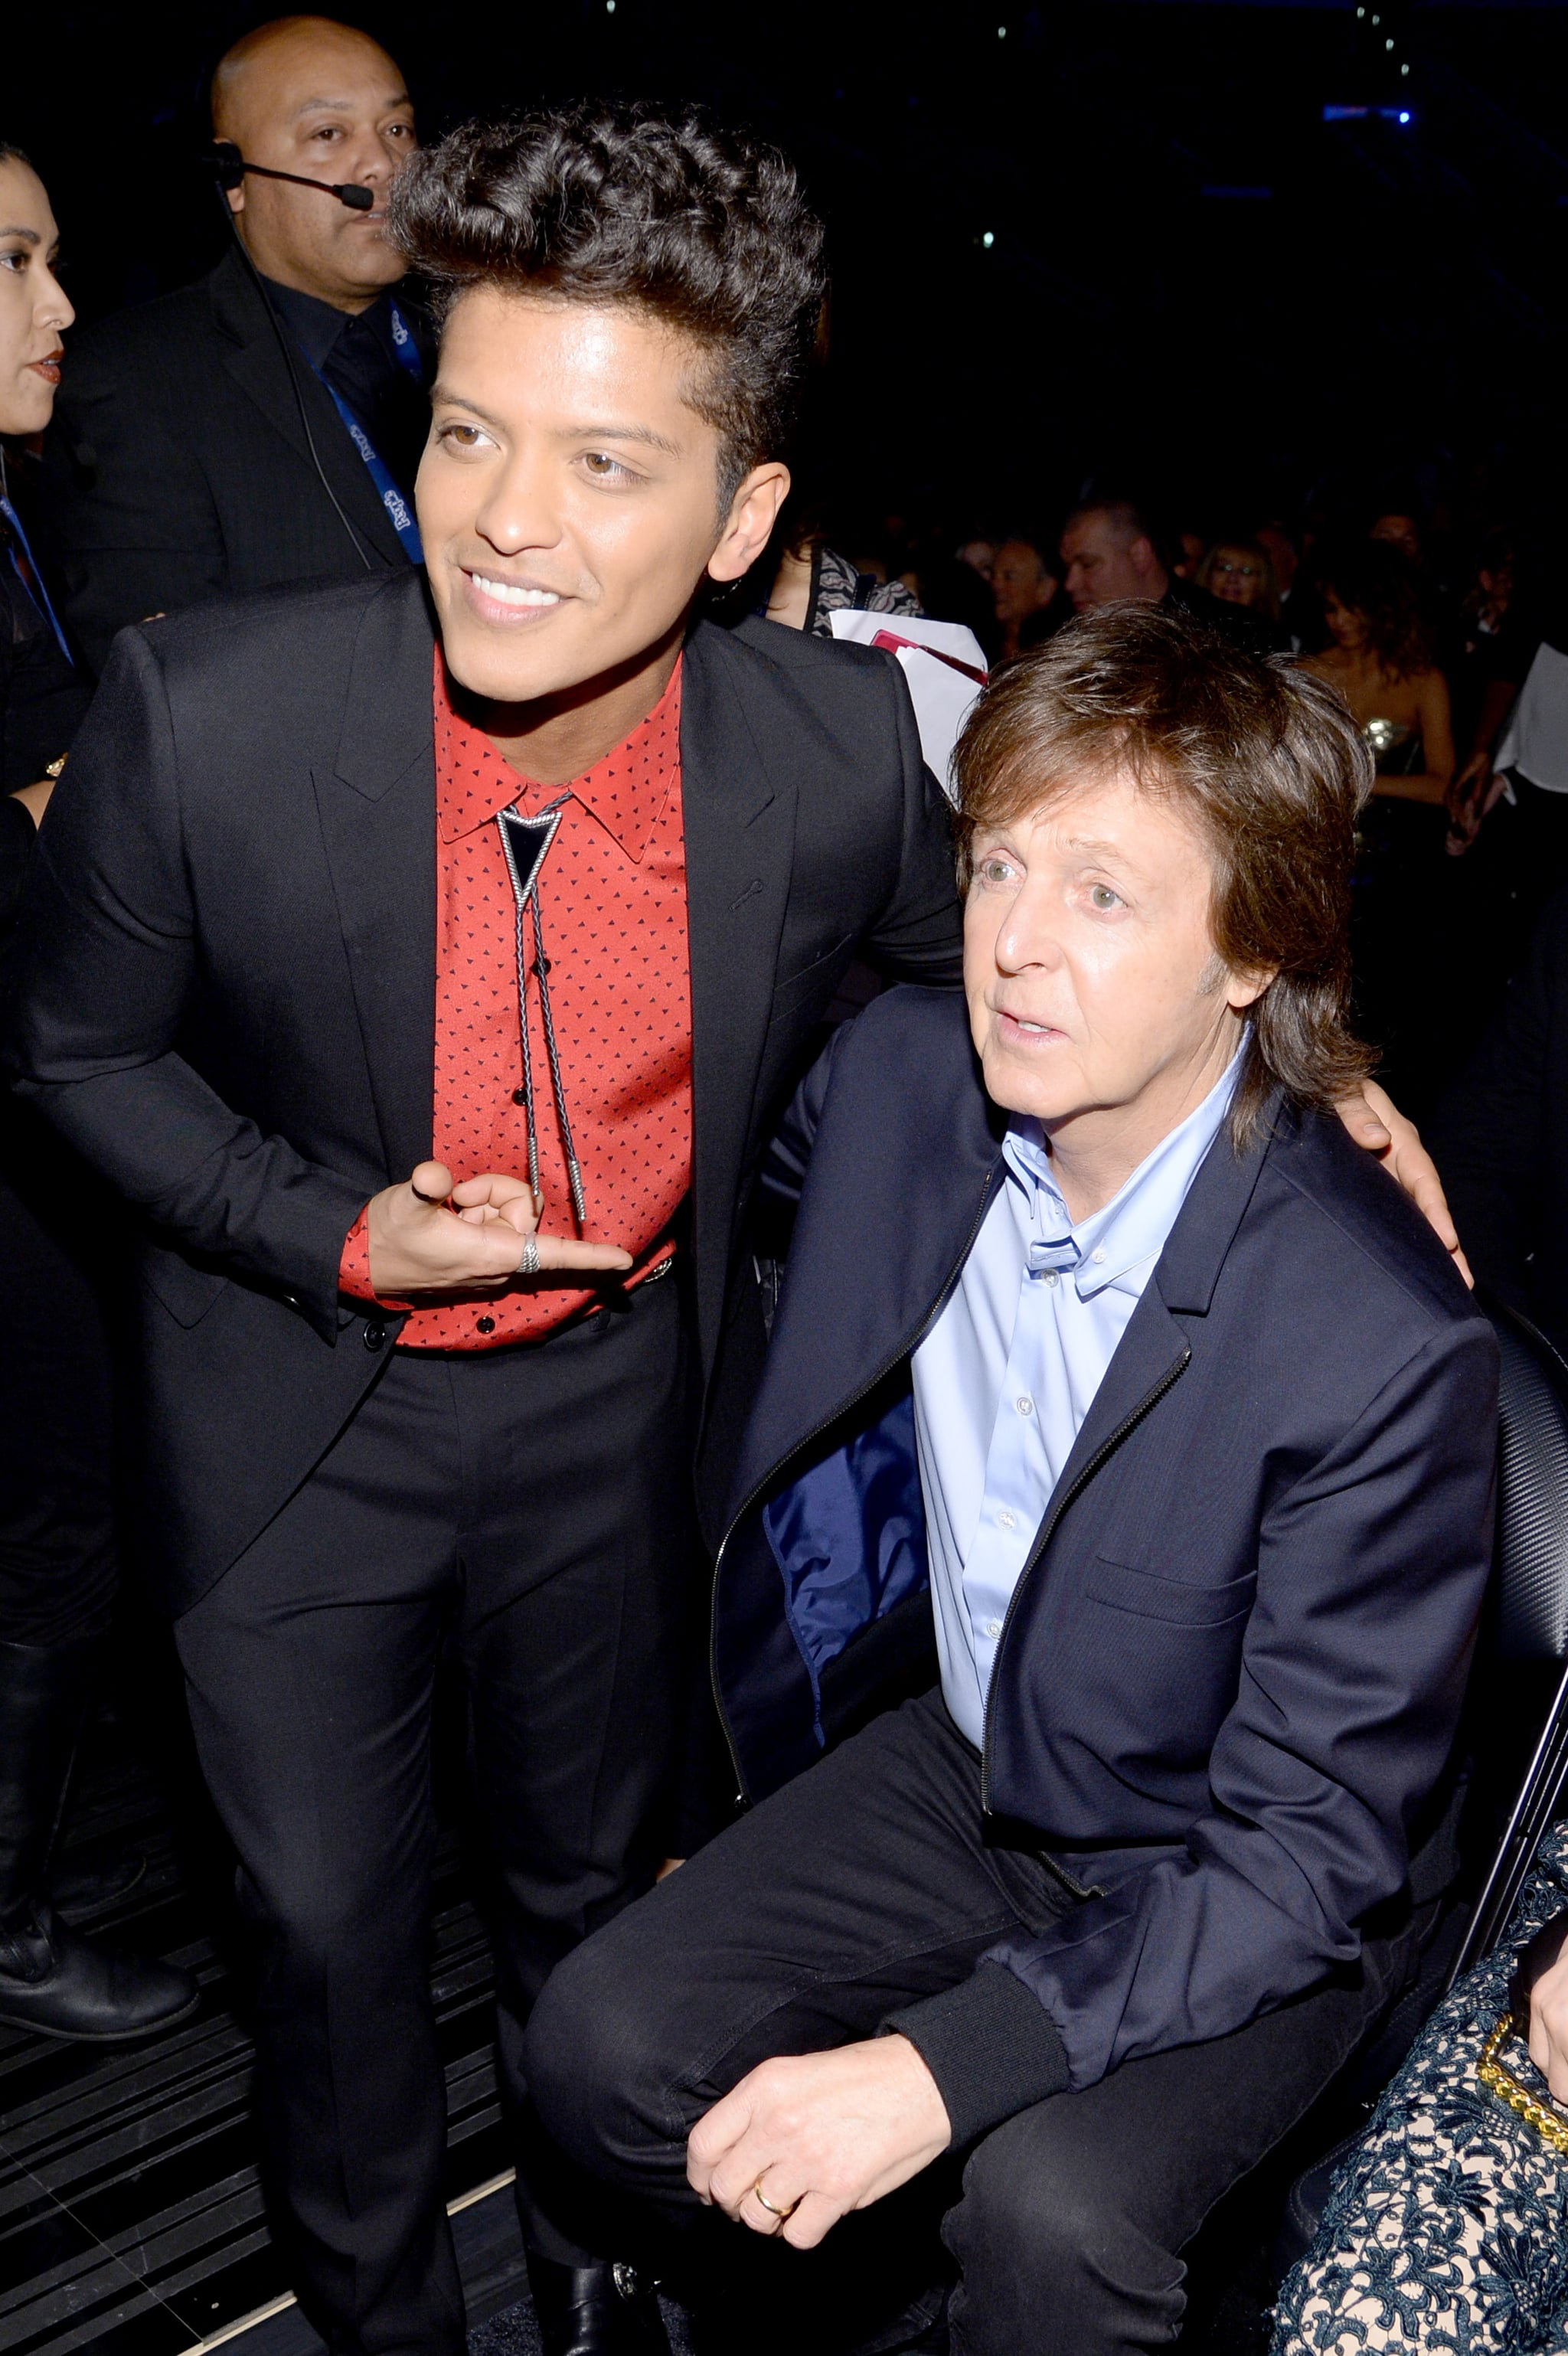 Bruno Mars took a picture with Paul McCartney.